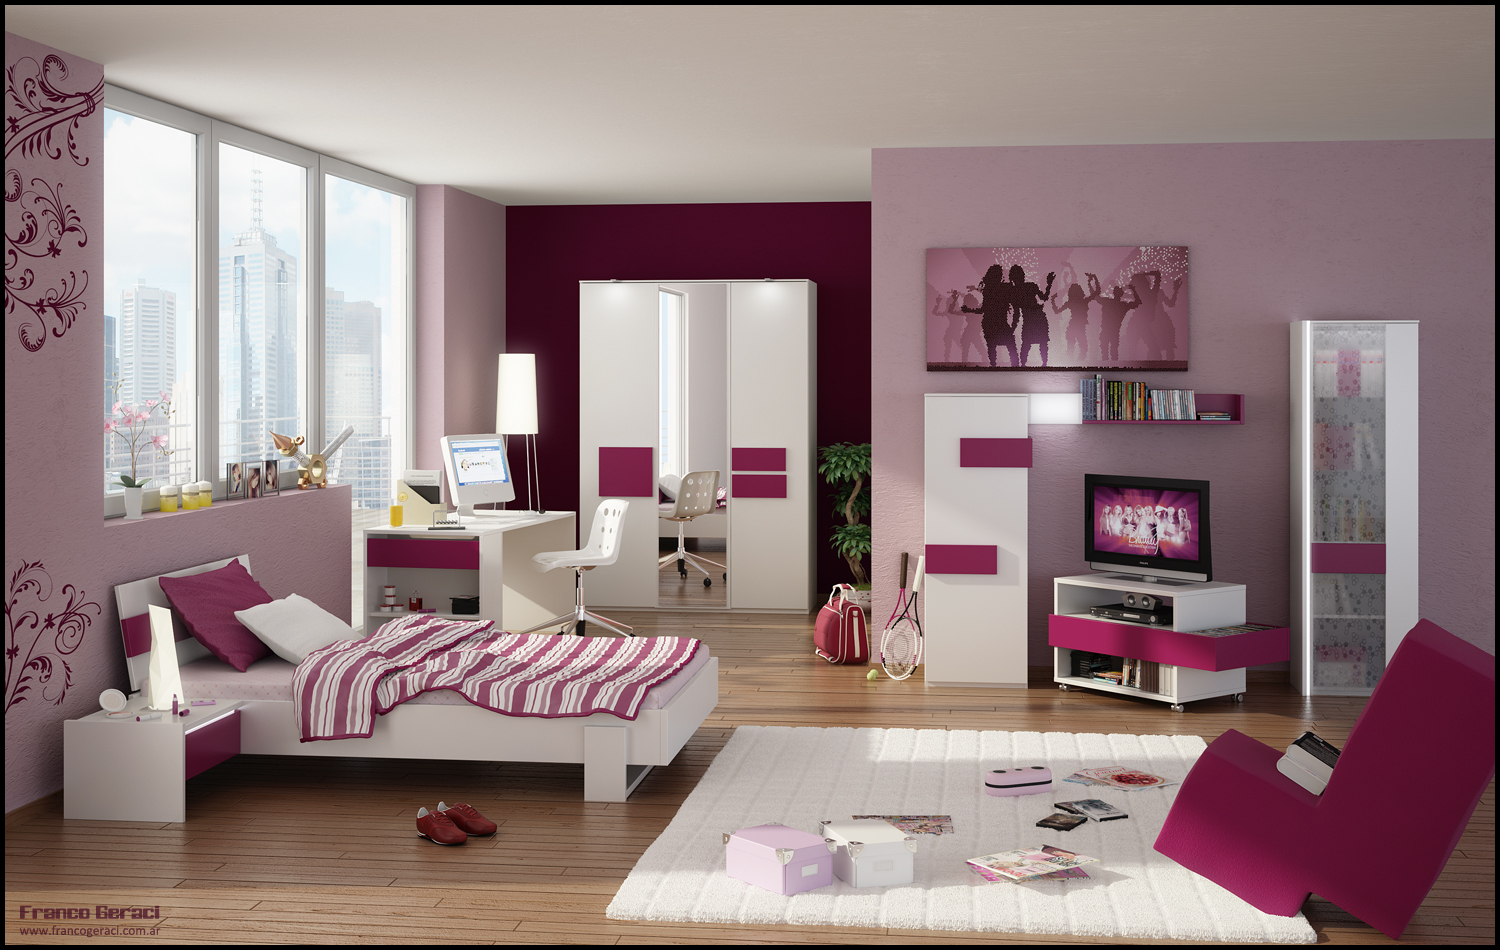 Incredible Teenage Girl Room Design Ideas 1500 x 950 · 847 kB · jpeg